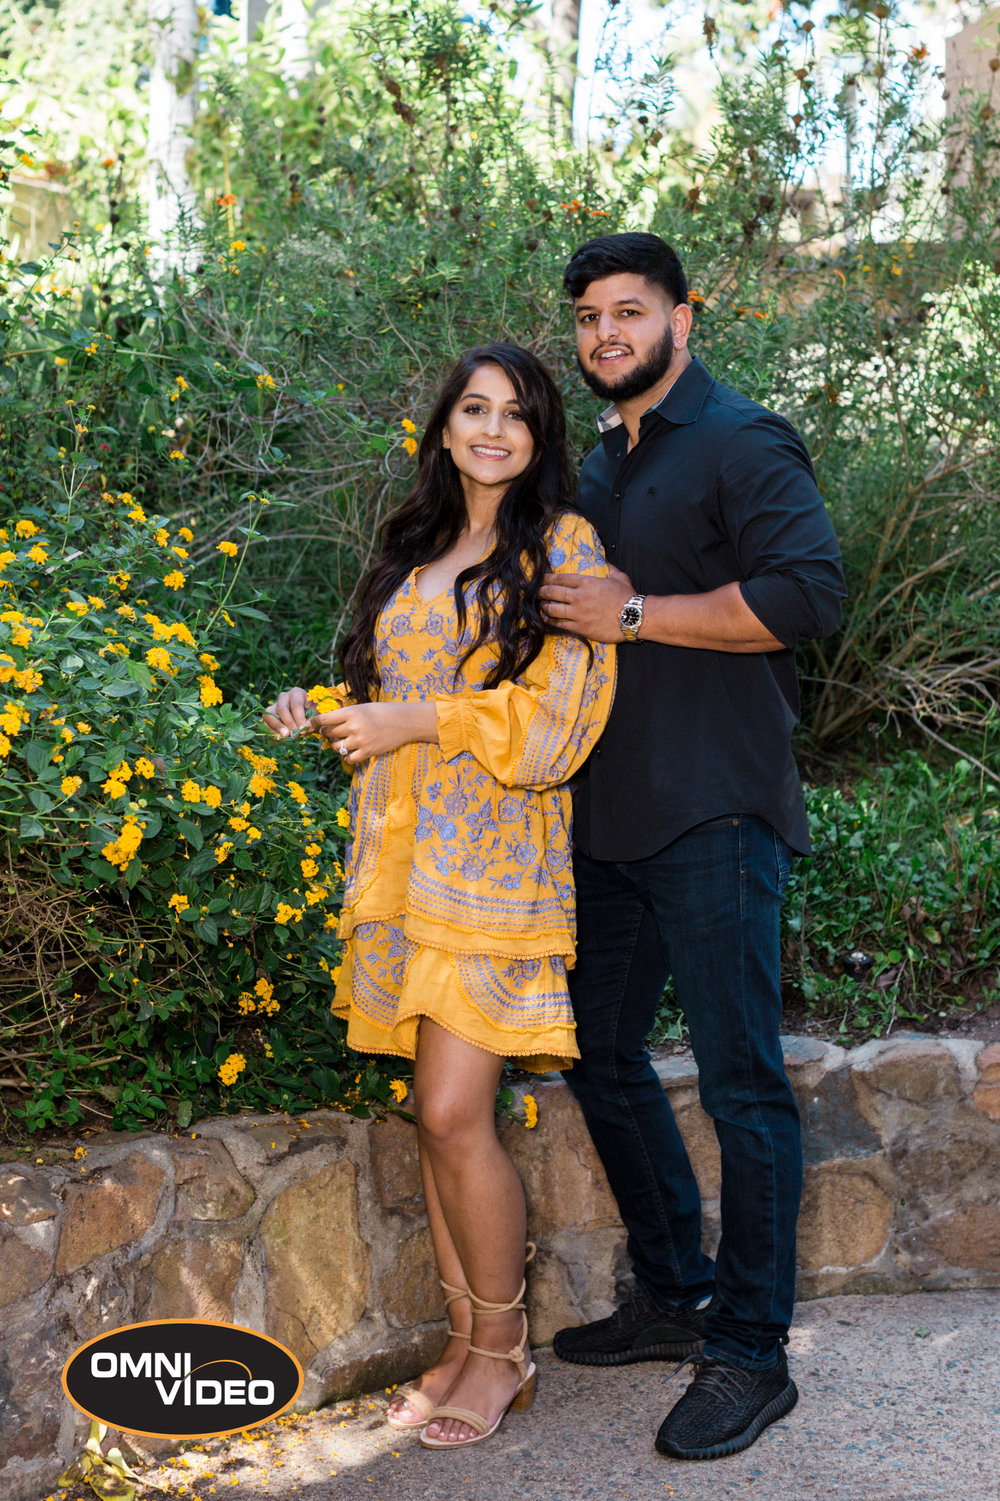 Yad & Raji's Engagement Photoshoot - Omni Video USA